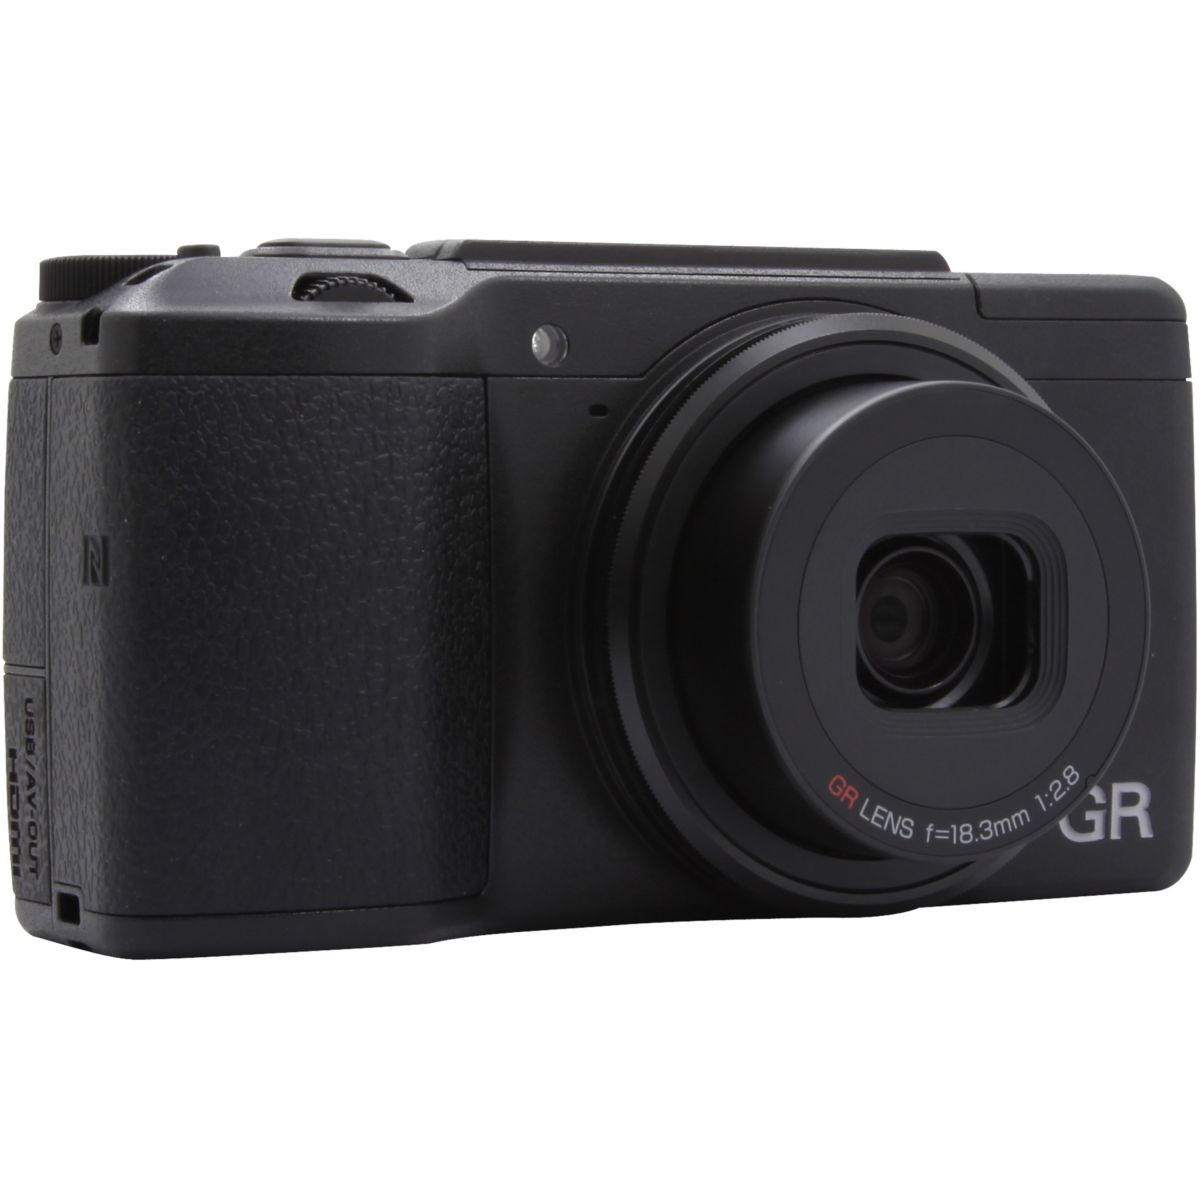 Appareil photo Compact RICOH GR II